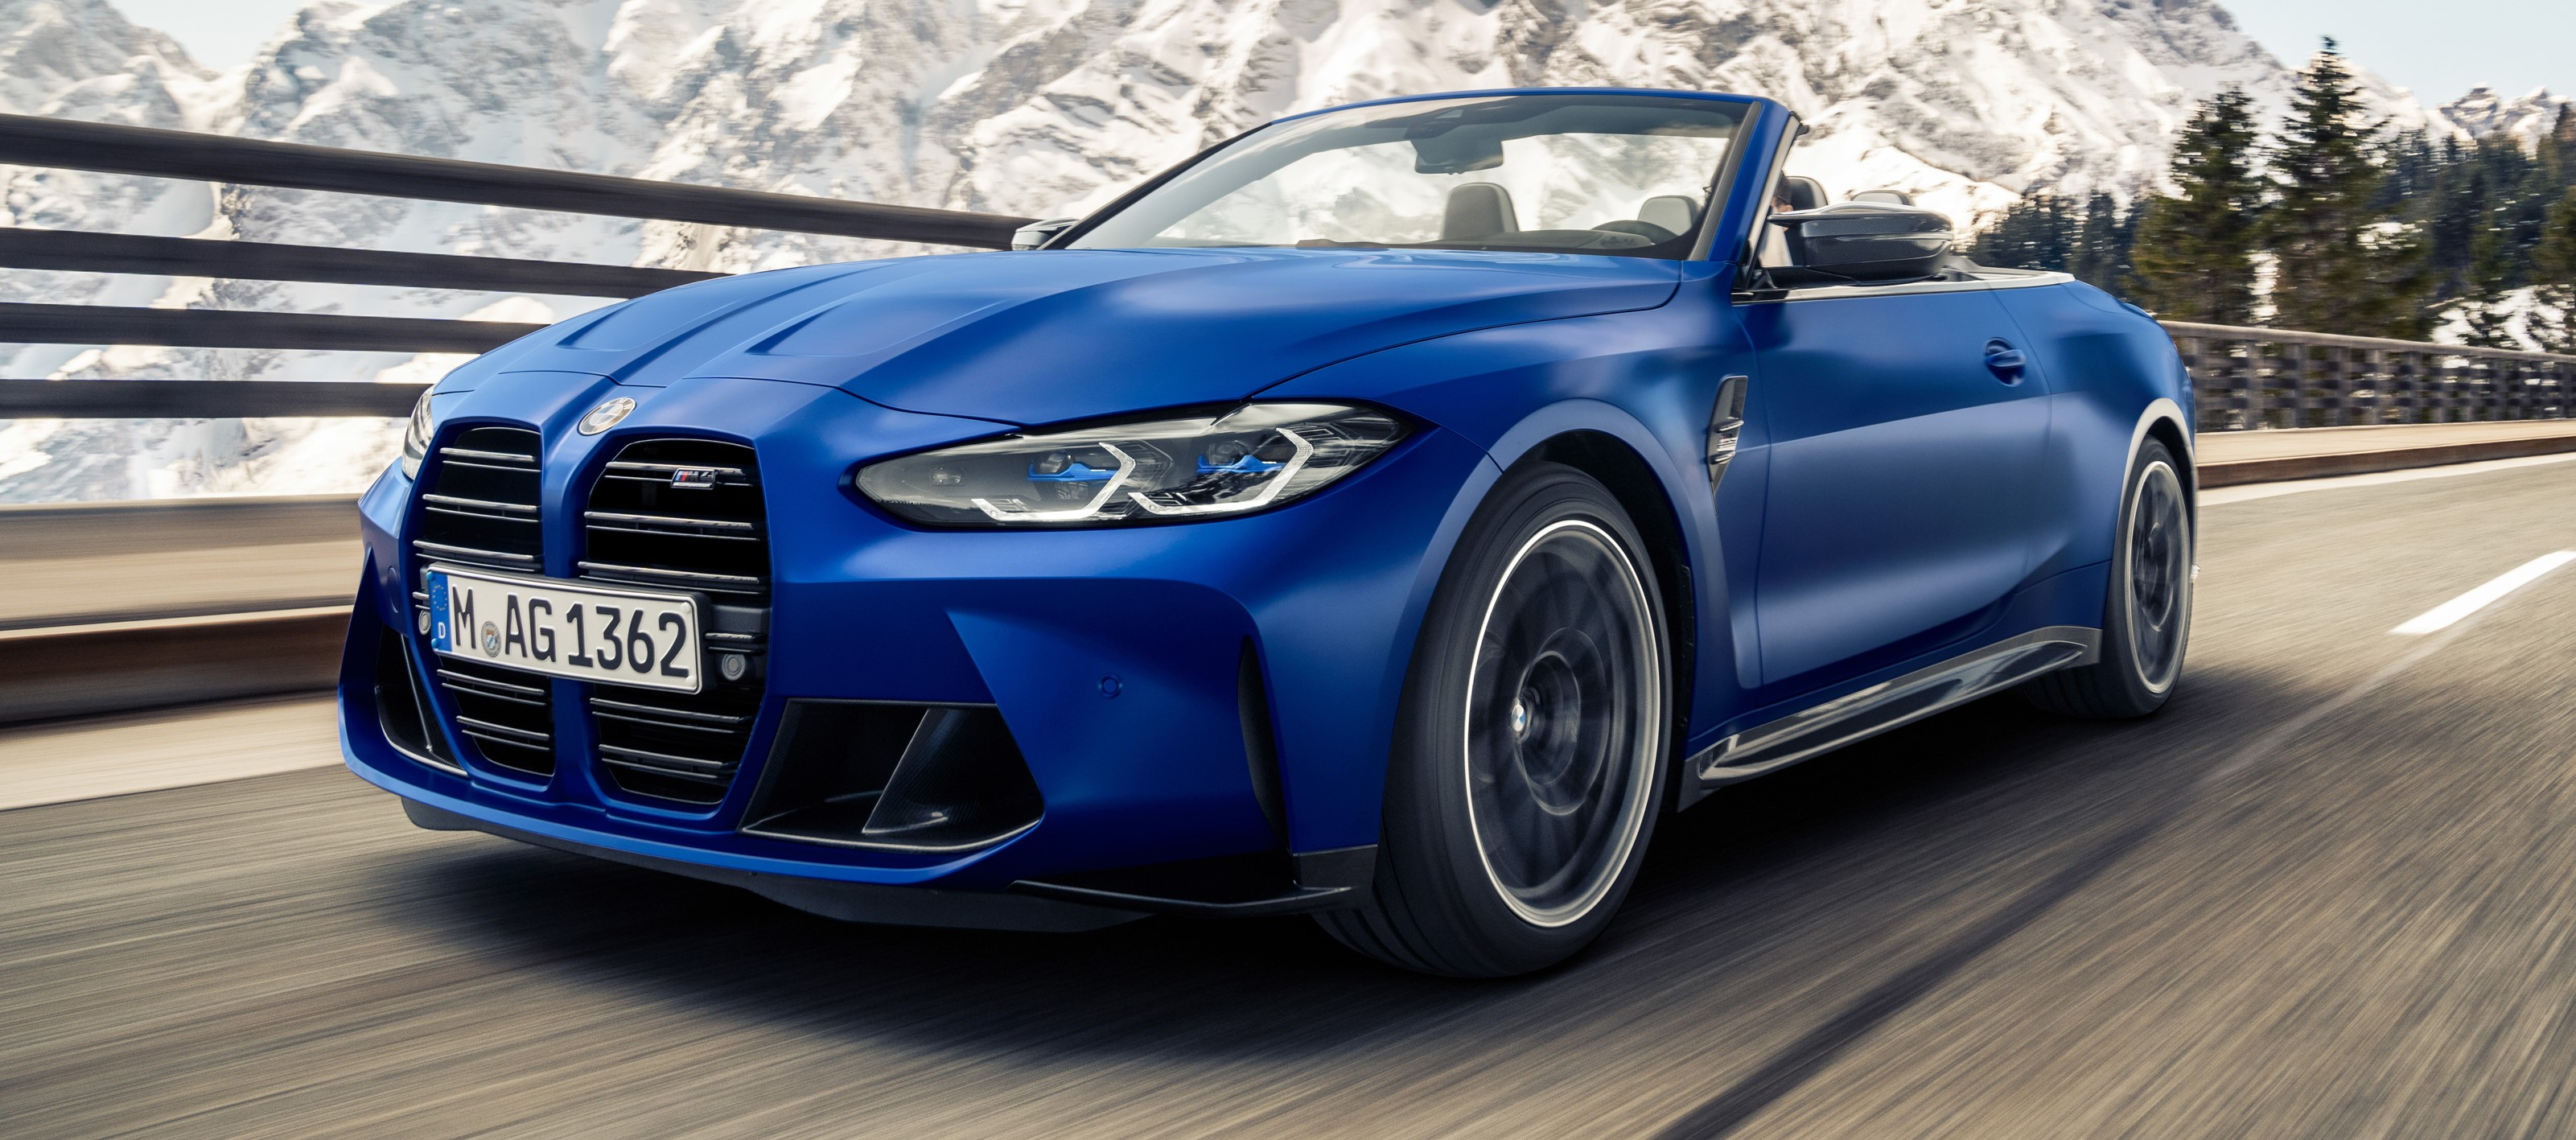 New BMW M4 Competition Convertible raises the roof